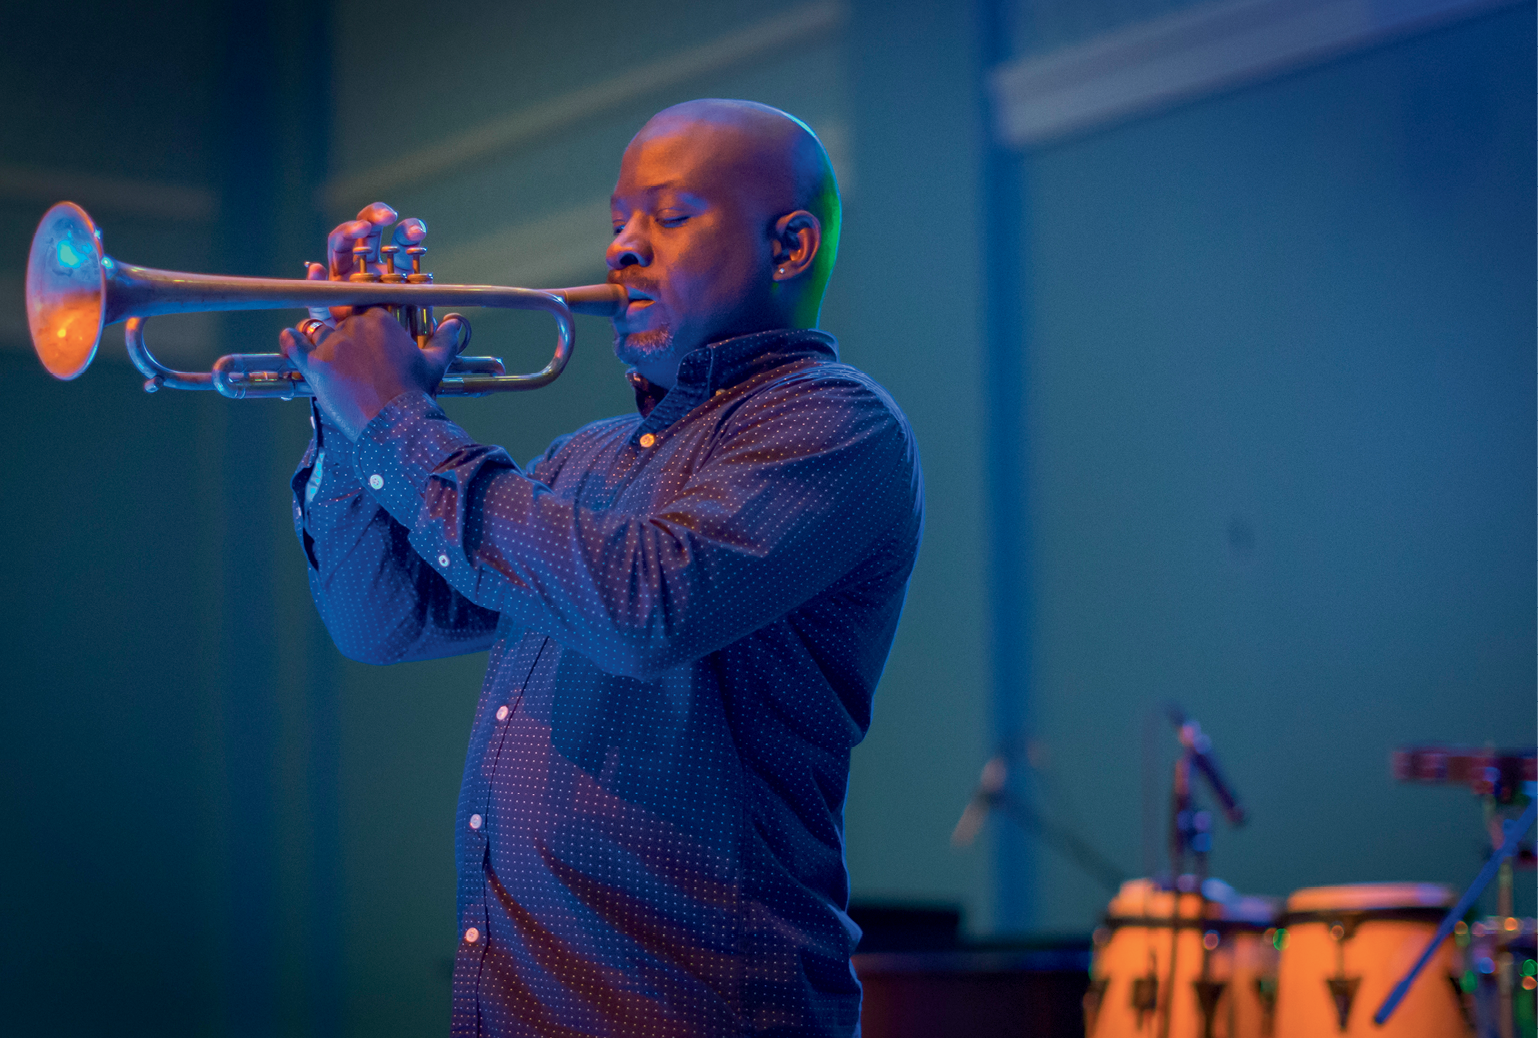 The lineup of very Charleston entertainment included jazz trumpeter Charlton Singleton, as well as singer Calvin Taylor, one of the original Drifters. Photo by Jonathan Balliet